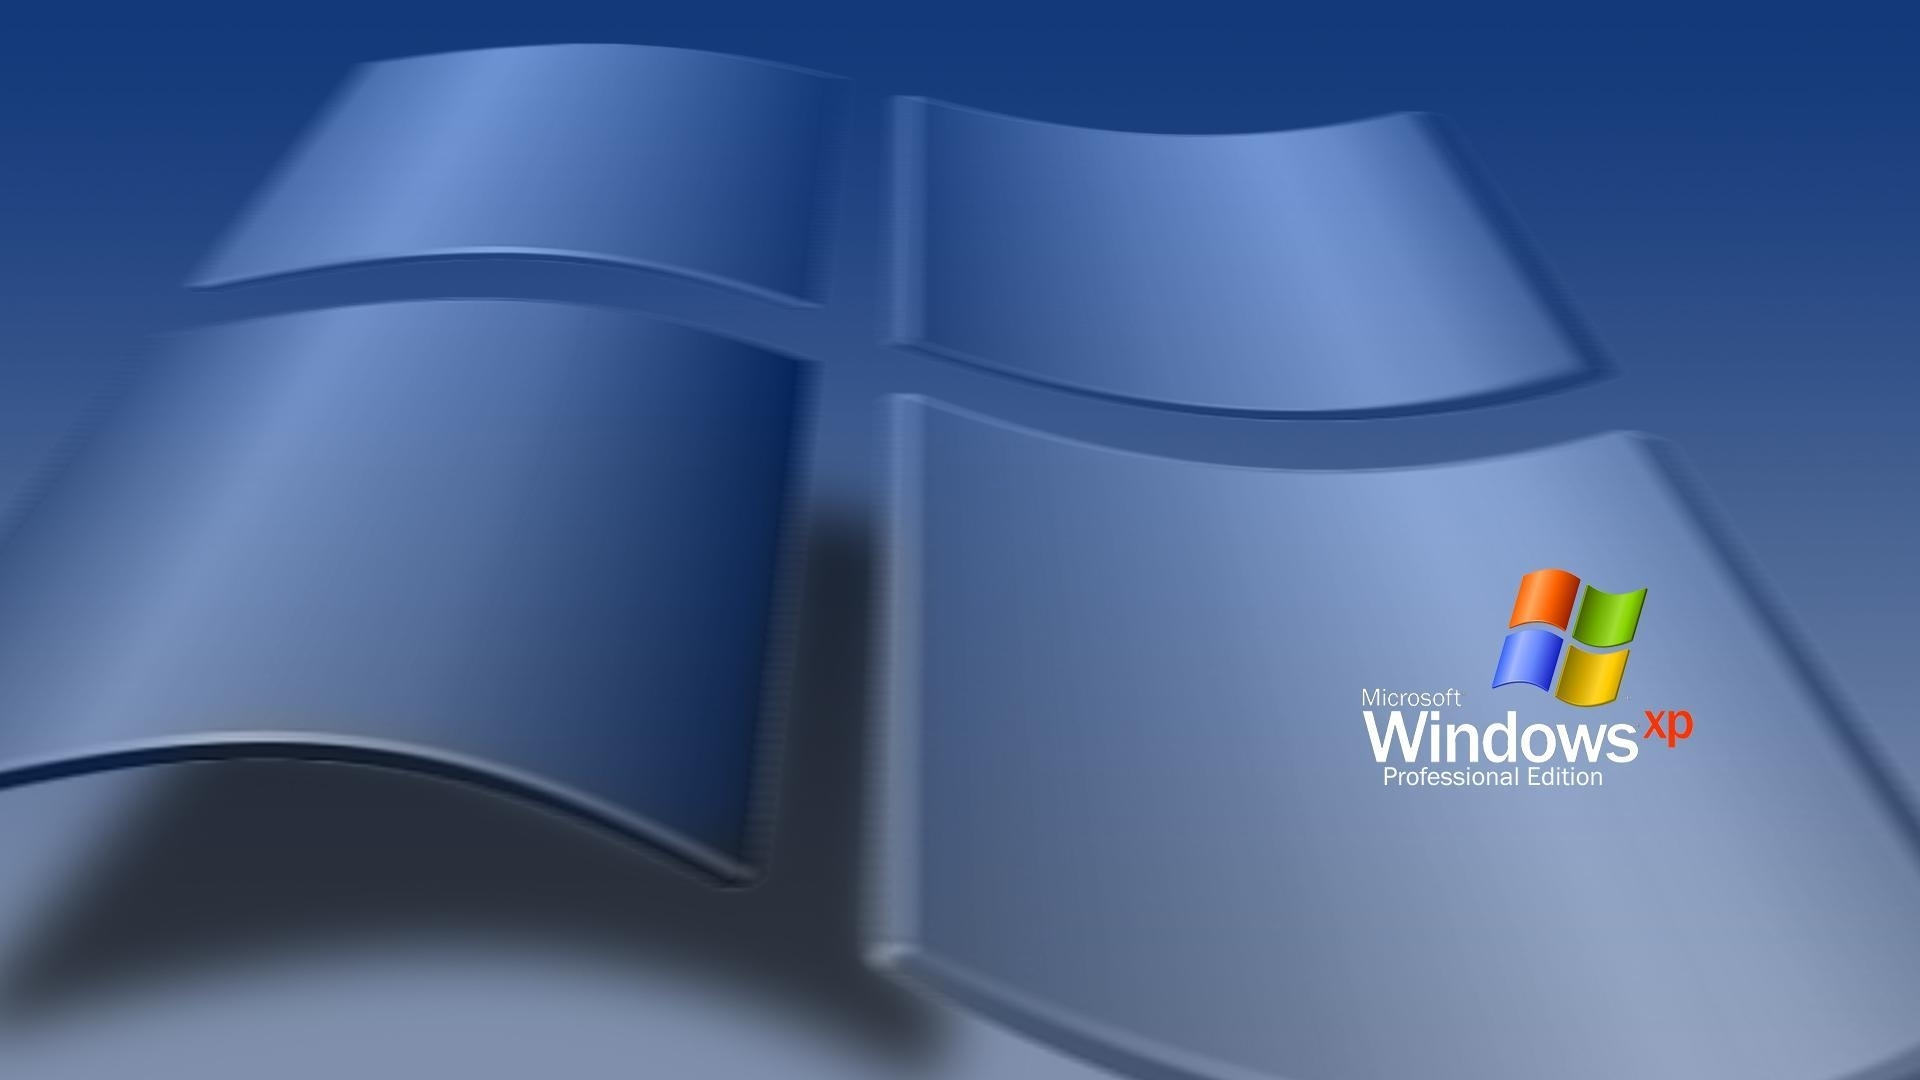 windows xp pro wallpapers - wallpaper cave